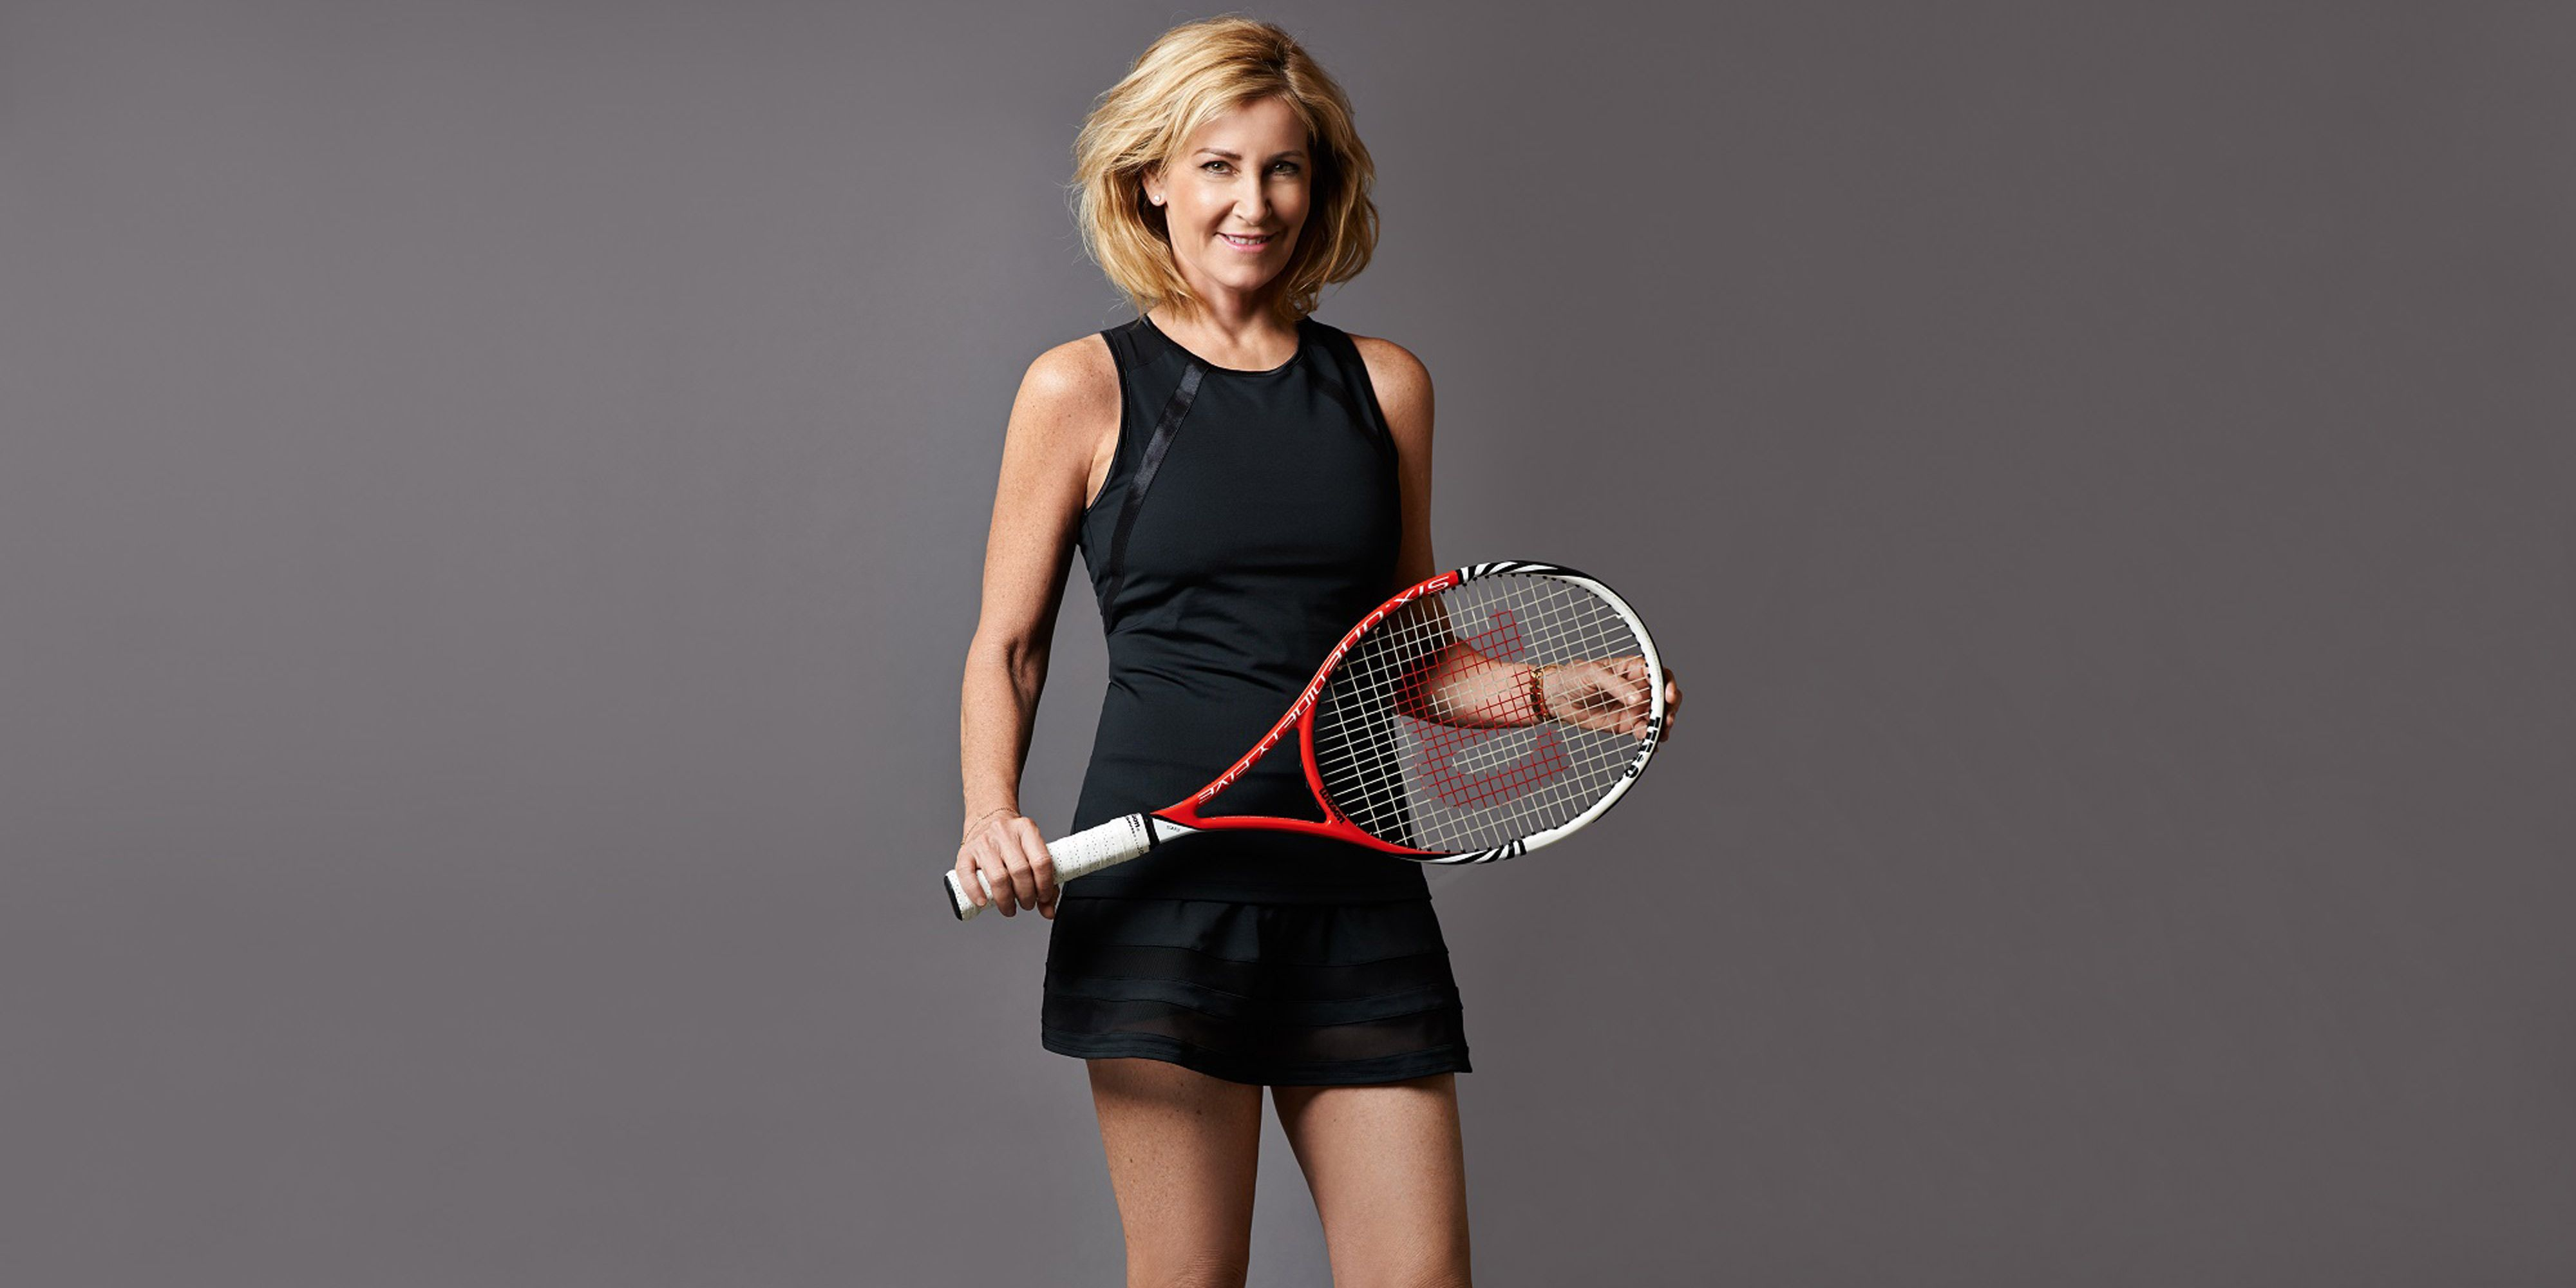 Chris Evert Tail Collection Chris Evert Tennis Clothes